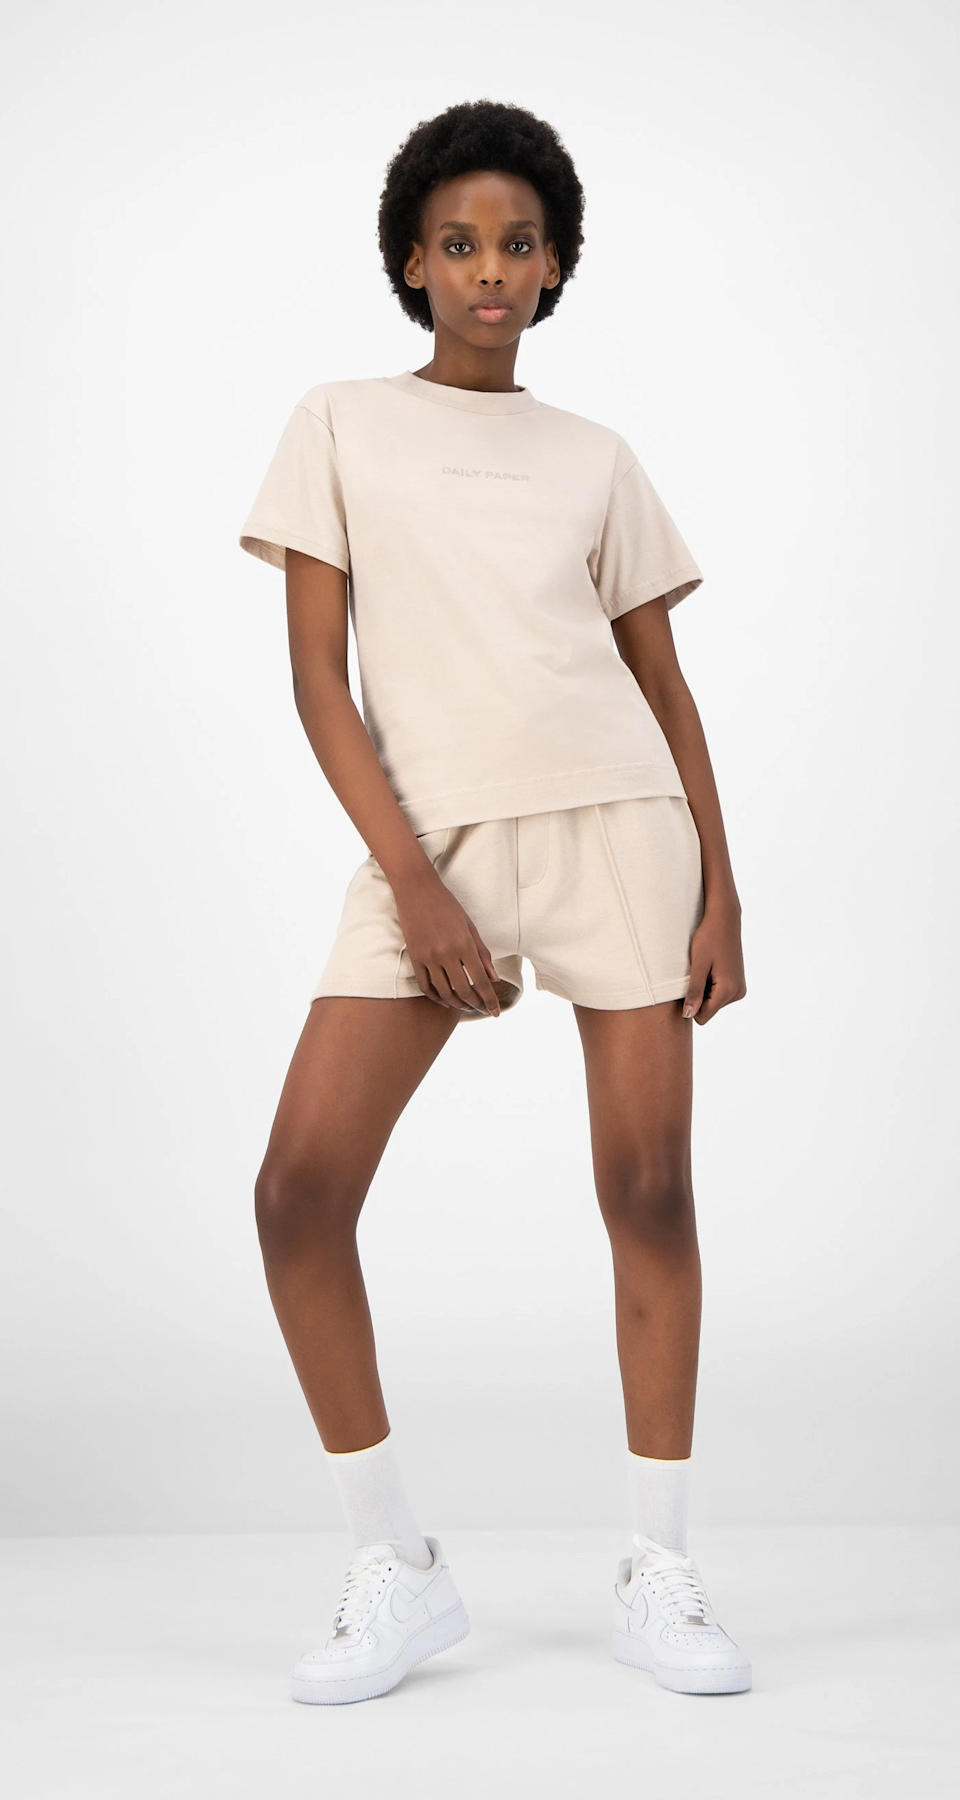 """<h2>Daily Paper</h2><br><br><strong>Daily Paper</strong> Beige Ehot Shorts, $, available at <a href=""""https://go.skimresources.com/?id=30283X879131&url=https%3A%2F%2Fwww.dailypaperclothing.com%2Fcollections%2Fwomen-shorts%2Fproducts%2Fbeige-ehot-shorts"""" rel=""""nofollow noopener"""" target=""""_blank"""" data-ylk=""""slk:Daily Paper"""" class=""""link rapid-noclick-resp"""">Daily Paper</a><br><br><strong>Daily Paper</strong> Beige Estan T-Shirt, $, available at <a href=""""https://go.skimresources.com/?id=30283X879131&url=https%3A%2F%2Fwww.dailypaperclothing.com%2Fcollections%2Fwomen-all%2Fproducts%2Fbeige-estan-t-shirt"""" rel=""""nofollow noopener"""" target=""""_blank"""" data-ylk=""""slk:Daily Paper"""" class=""""link rapid-noclick-resp"""">Daily Paper</a>"""